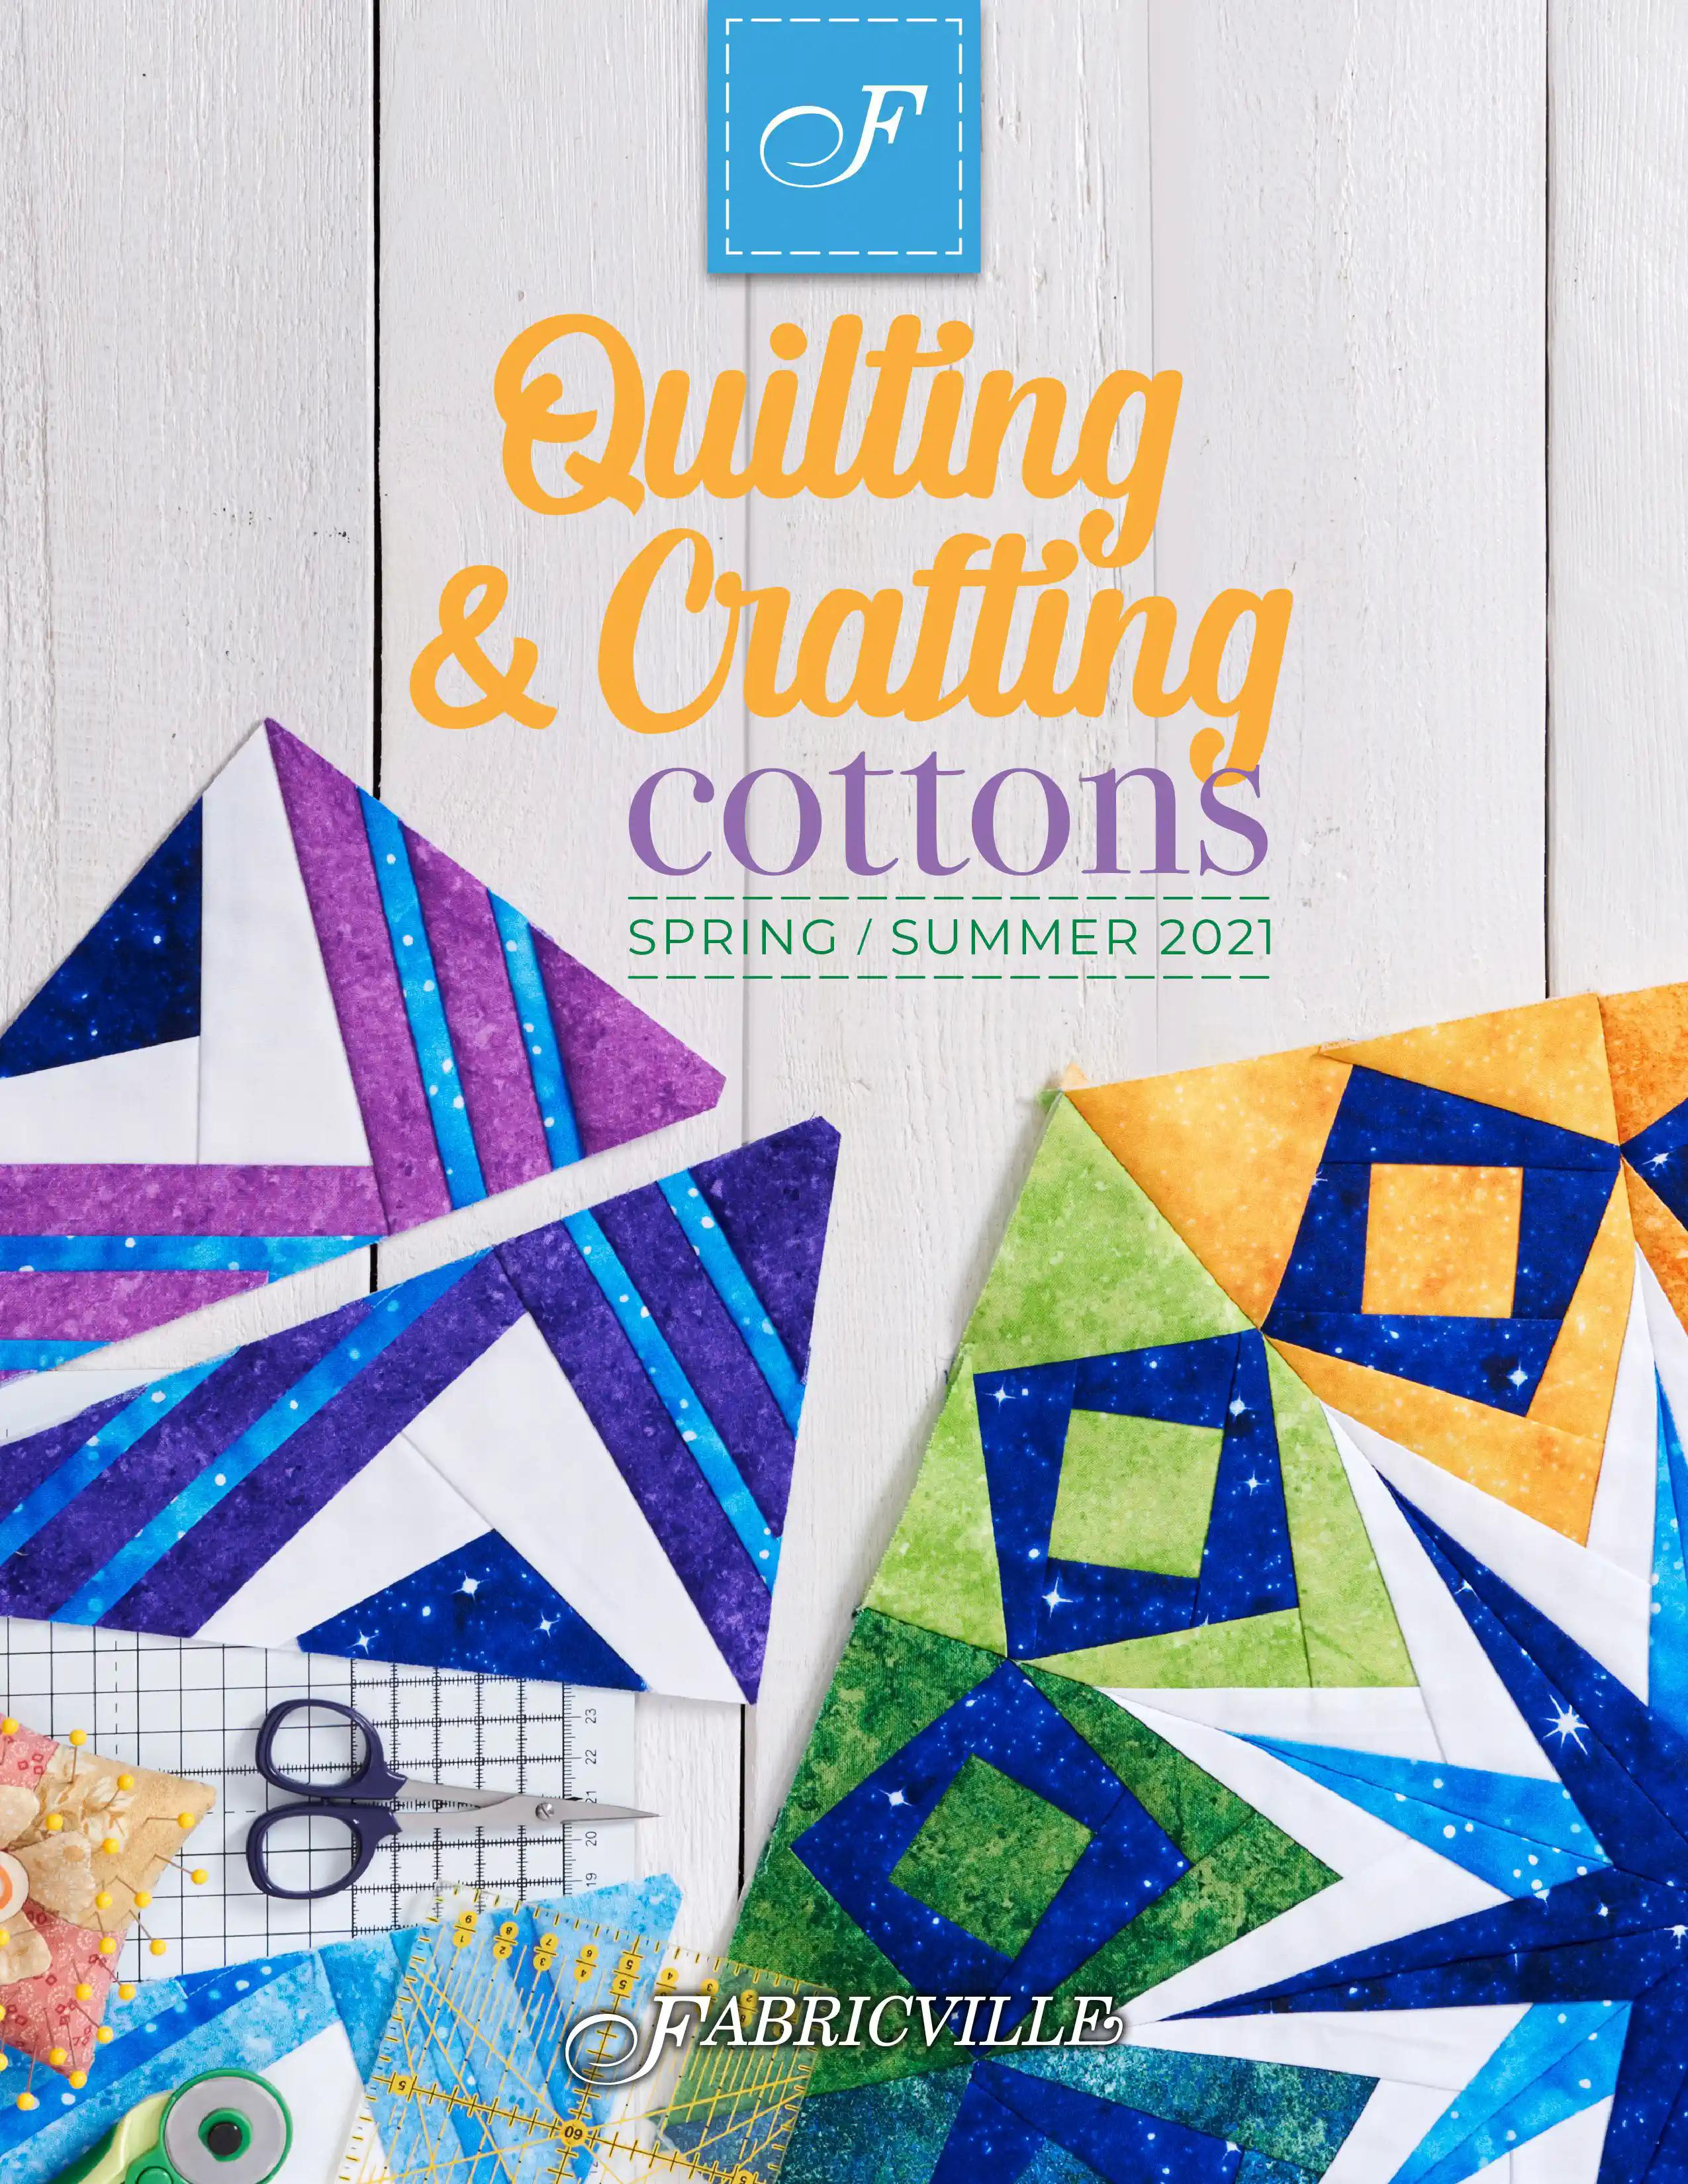 Fabricville - Quilling & Crafting Cottons